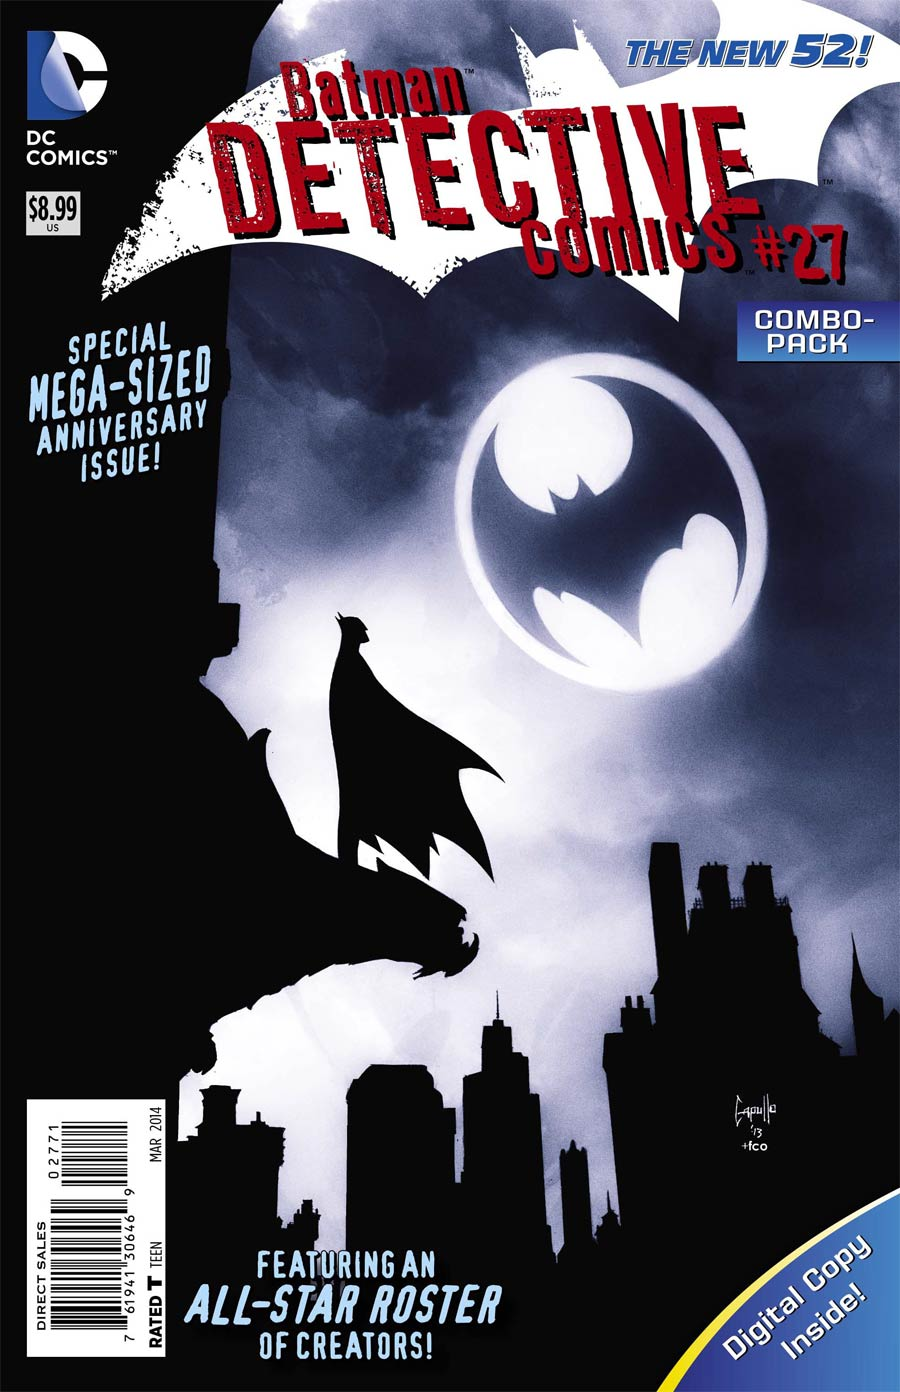 Detective Comics Vol 2 #27 Cover C Combo Pack With Polybag (Gothtopia Tie-In)